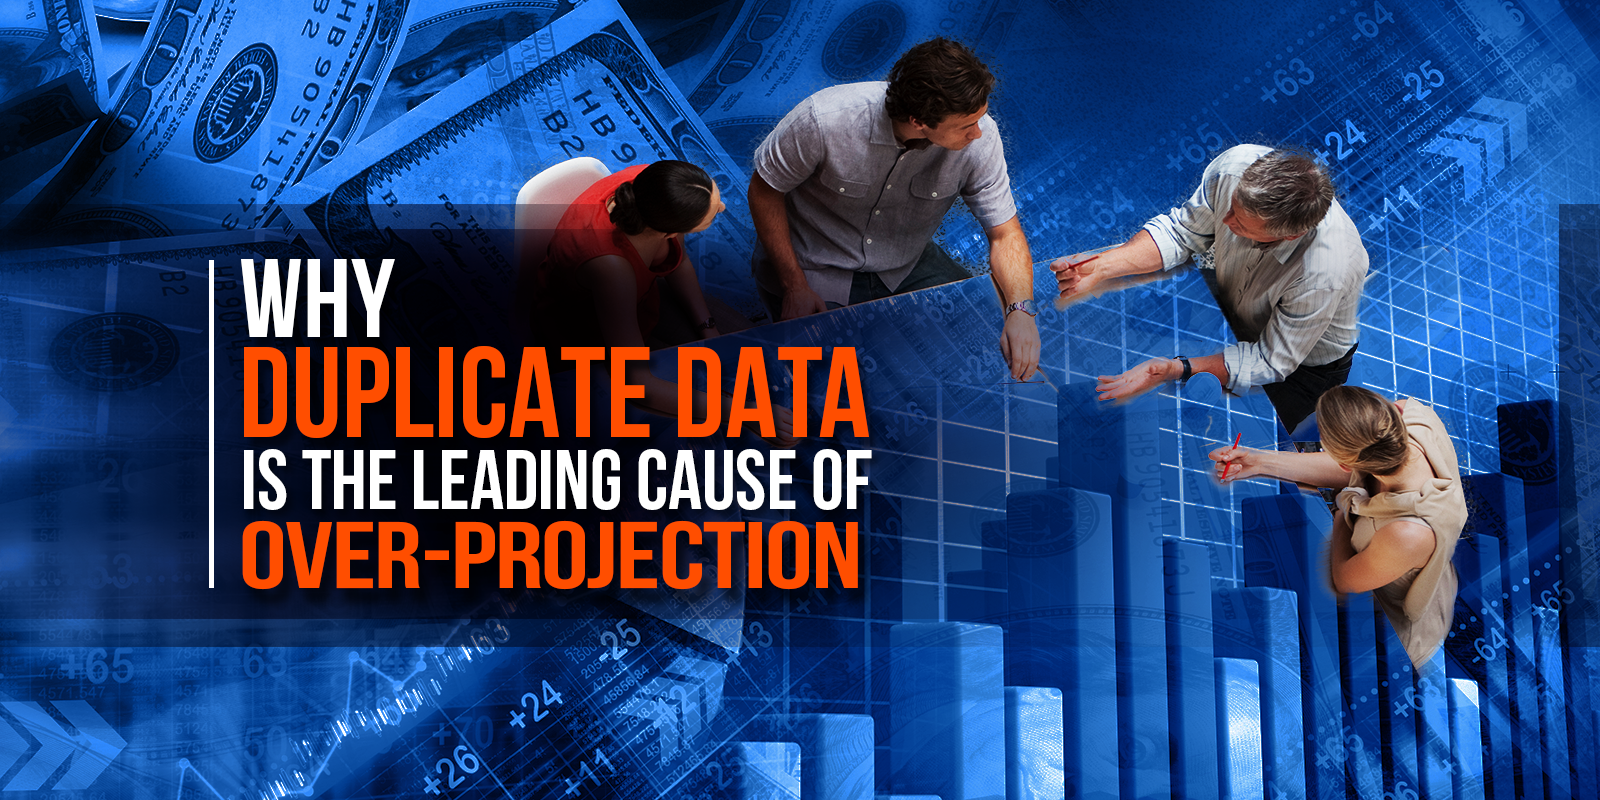 Why Duplicate Data Is The Leading Cause of Over-Projection